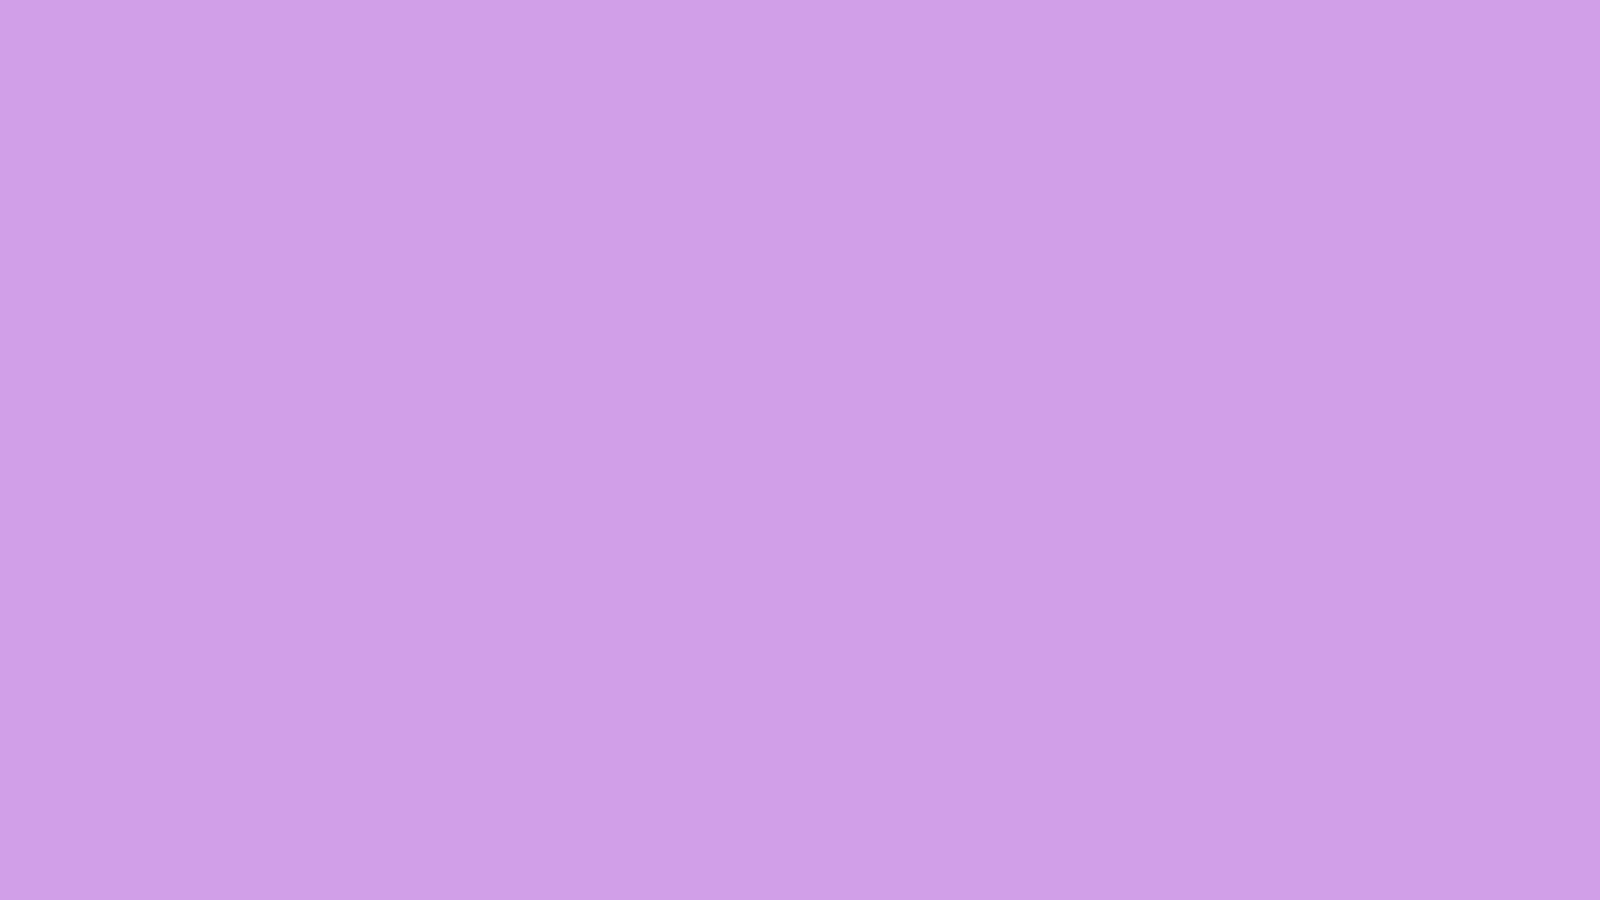 1600x900 Bright Ube Solid Color Background